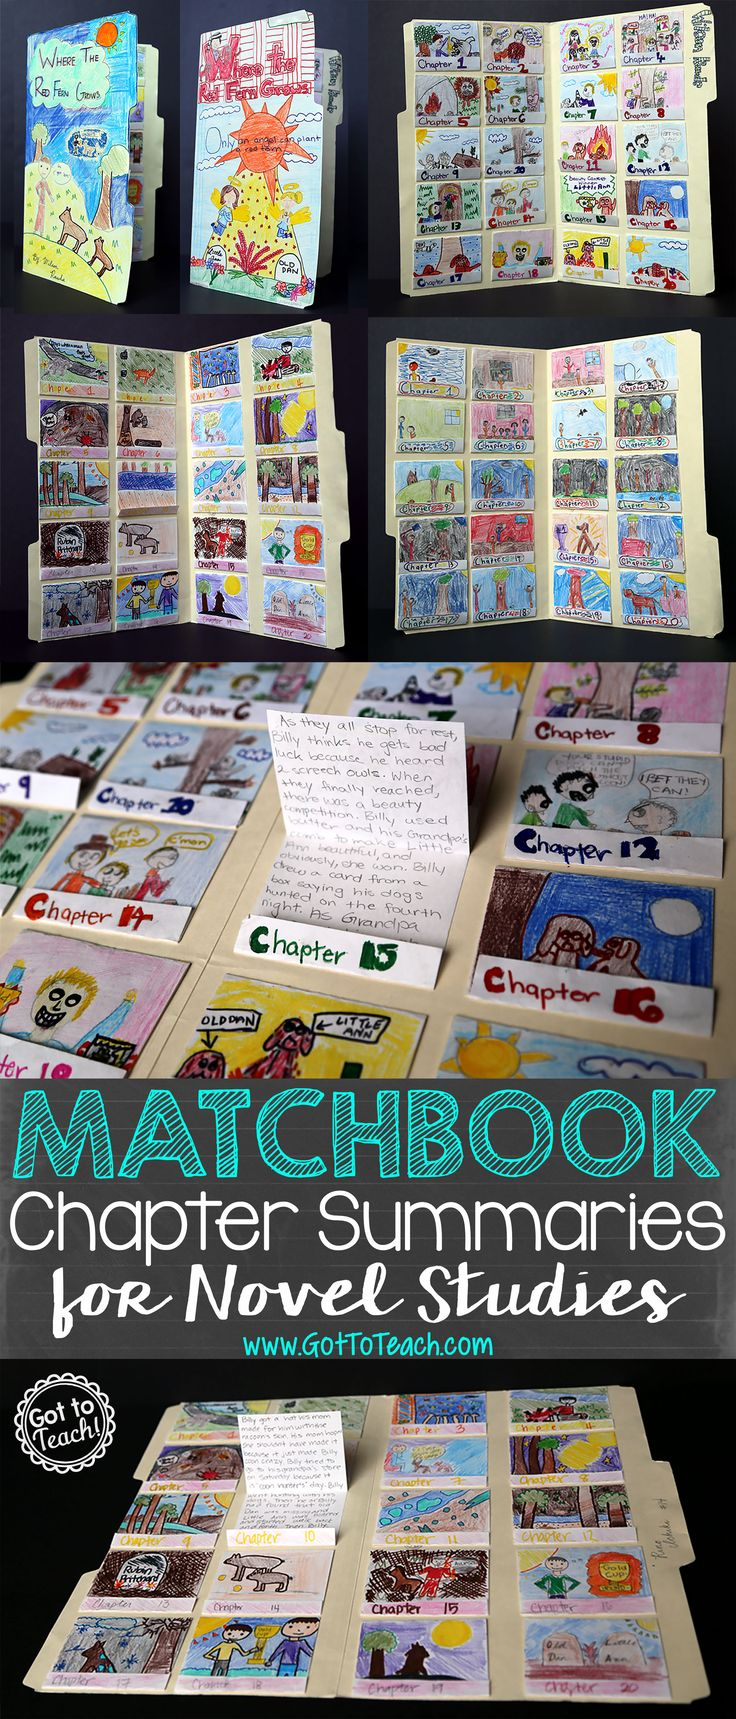 LAPBOOK - Matchbook: Resúmenes de un libro o novela por capítulos #lapbook #matchbook #resumir